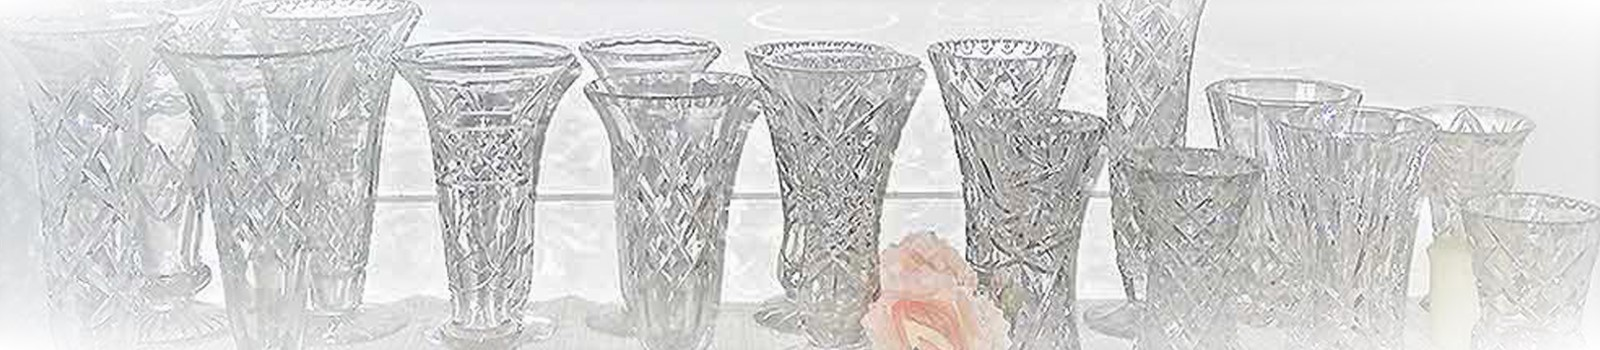 Depression-and-Crystal-Vases-for-hire-hightesahire.co-nz